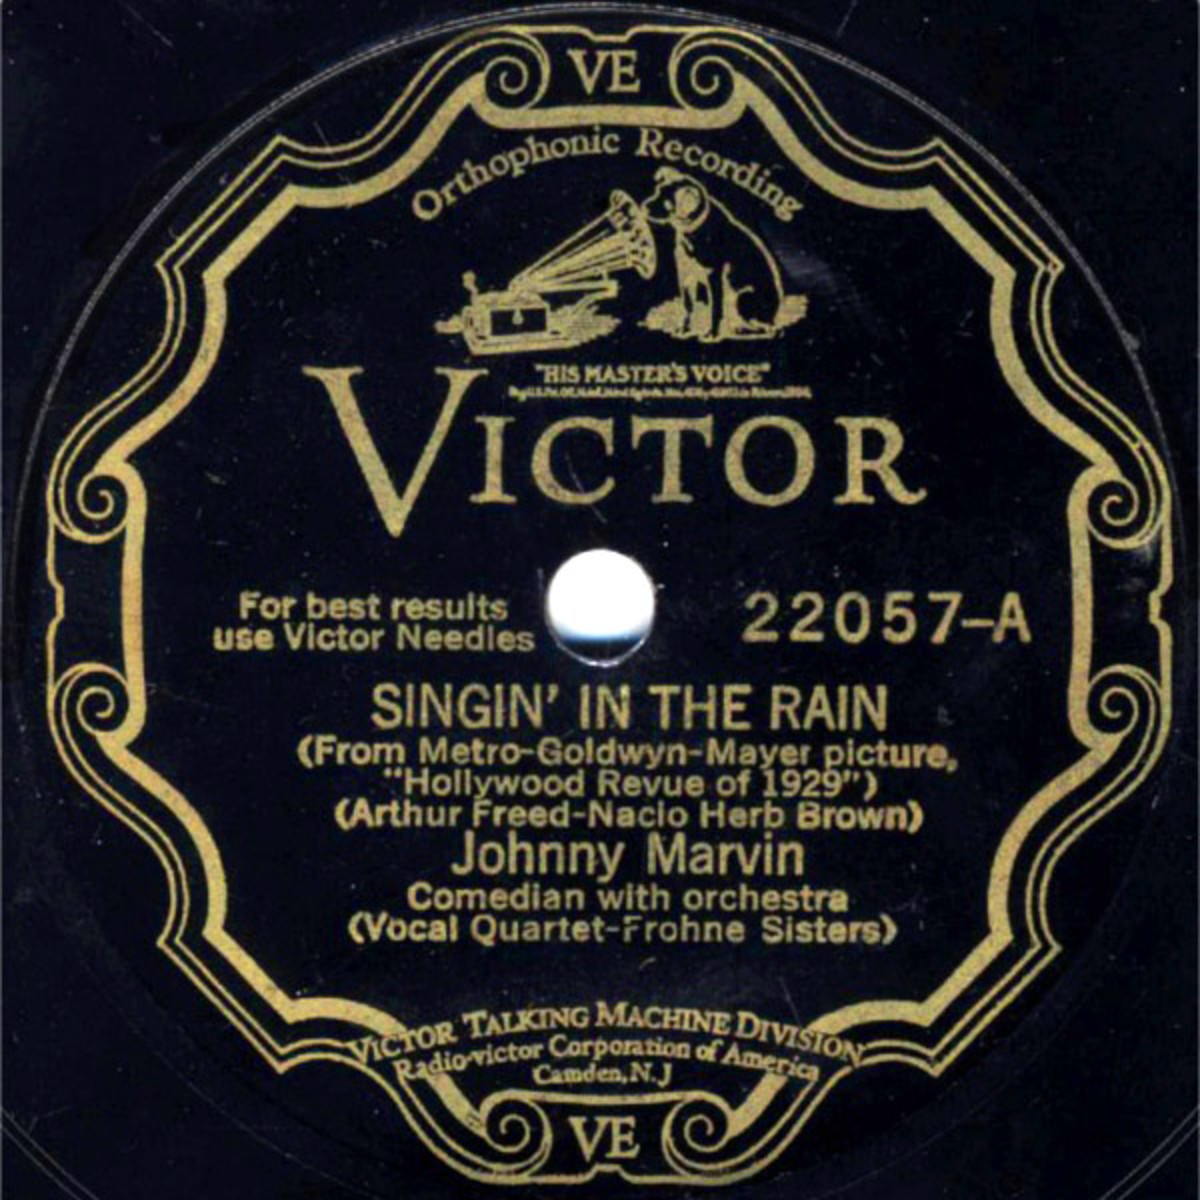 The Frohne Sisters sang backup to Johnny Marvin for this 78 RPM RCA Victor label